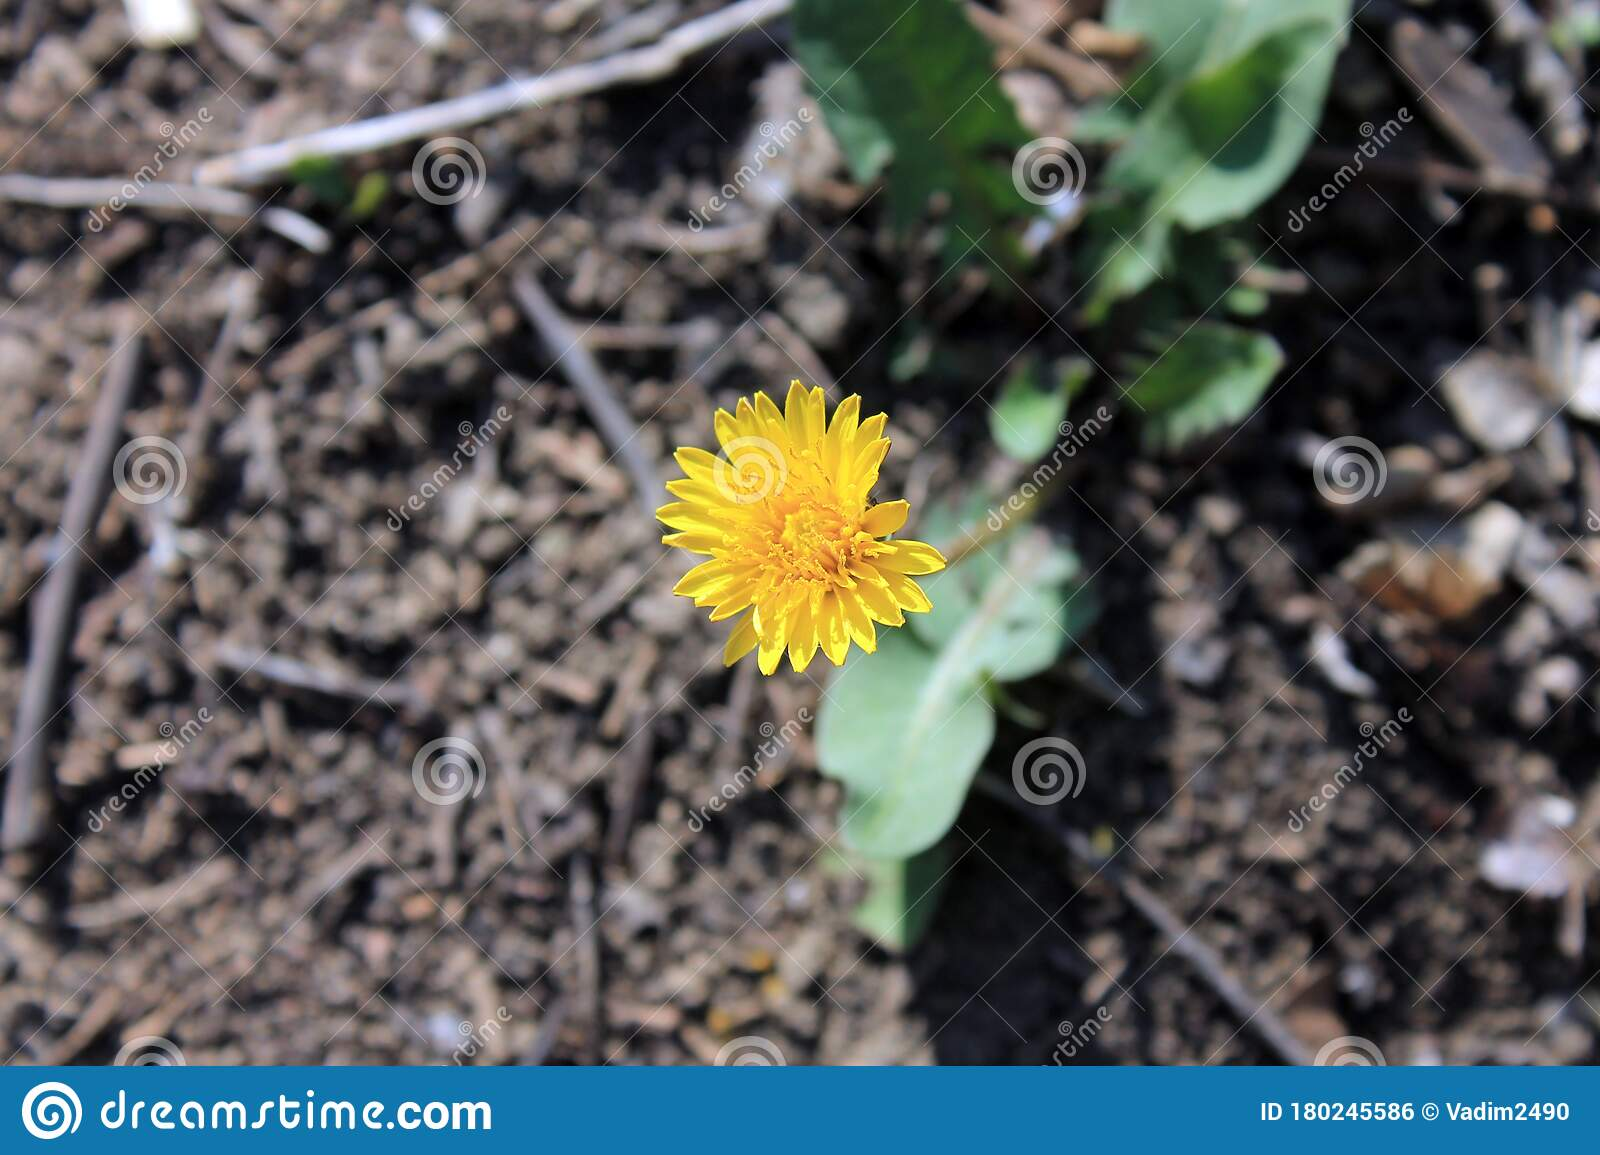 The Yellow Flower Of A Dandelion In Forest Stock Photo ...